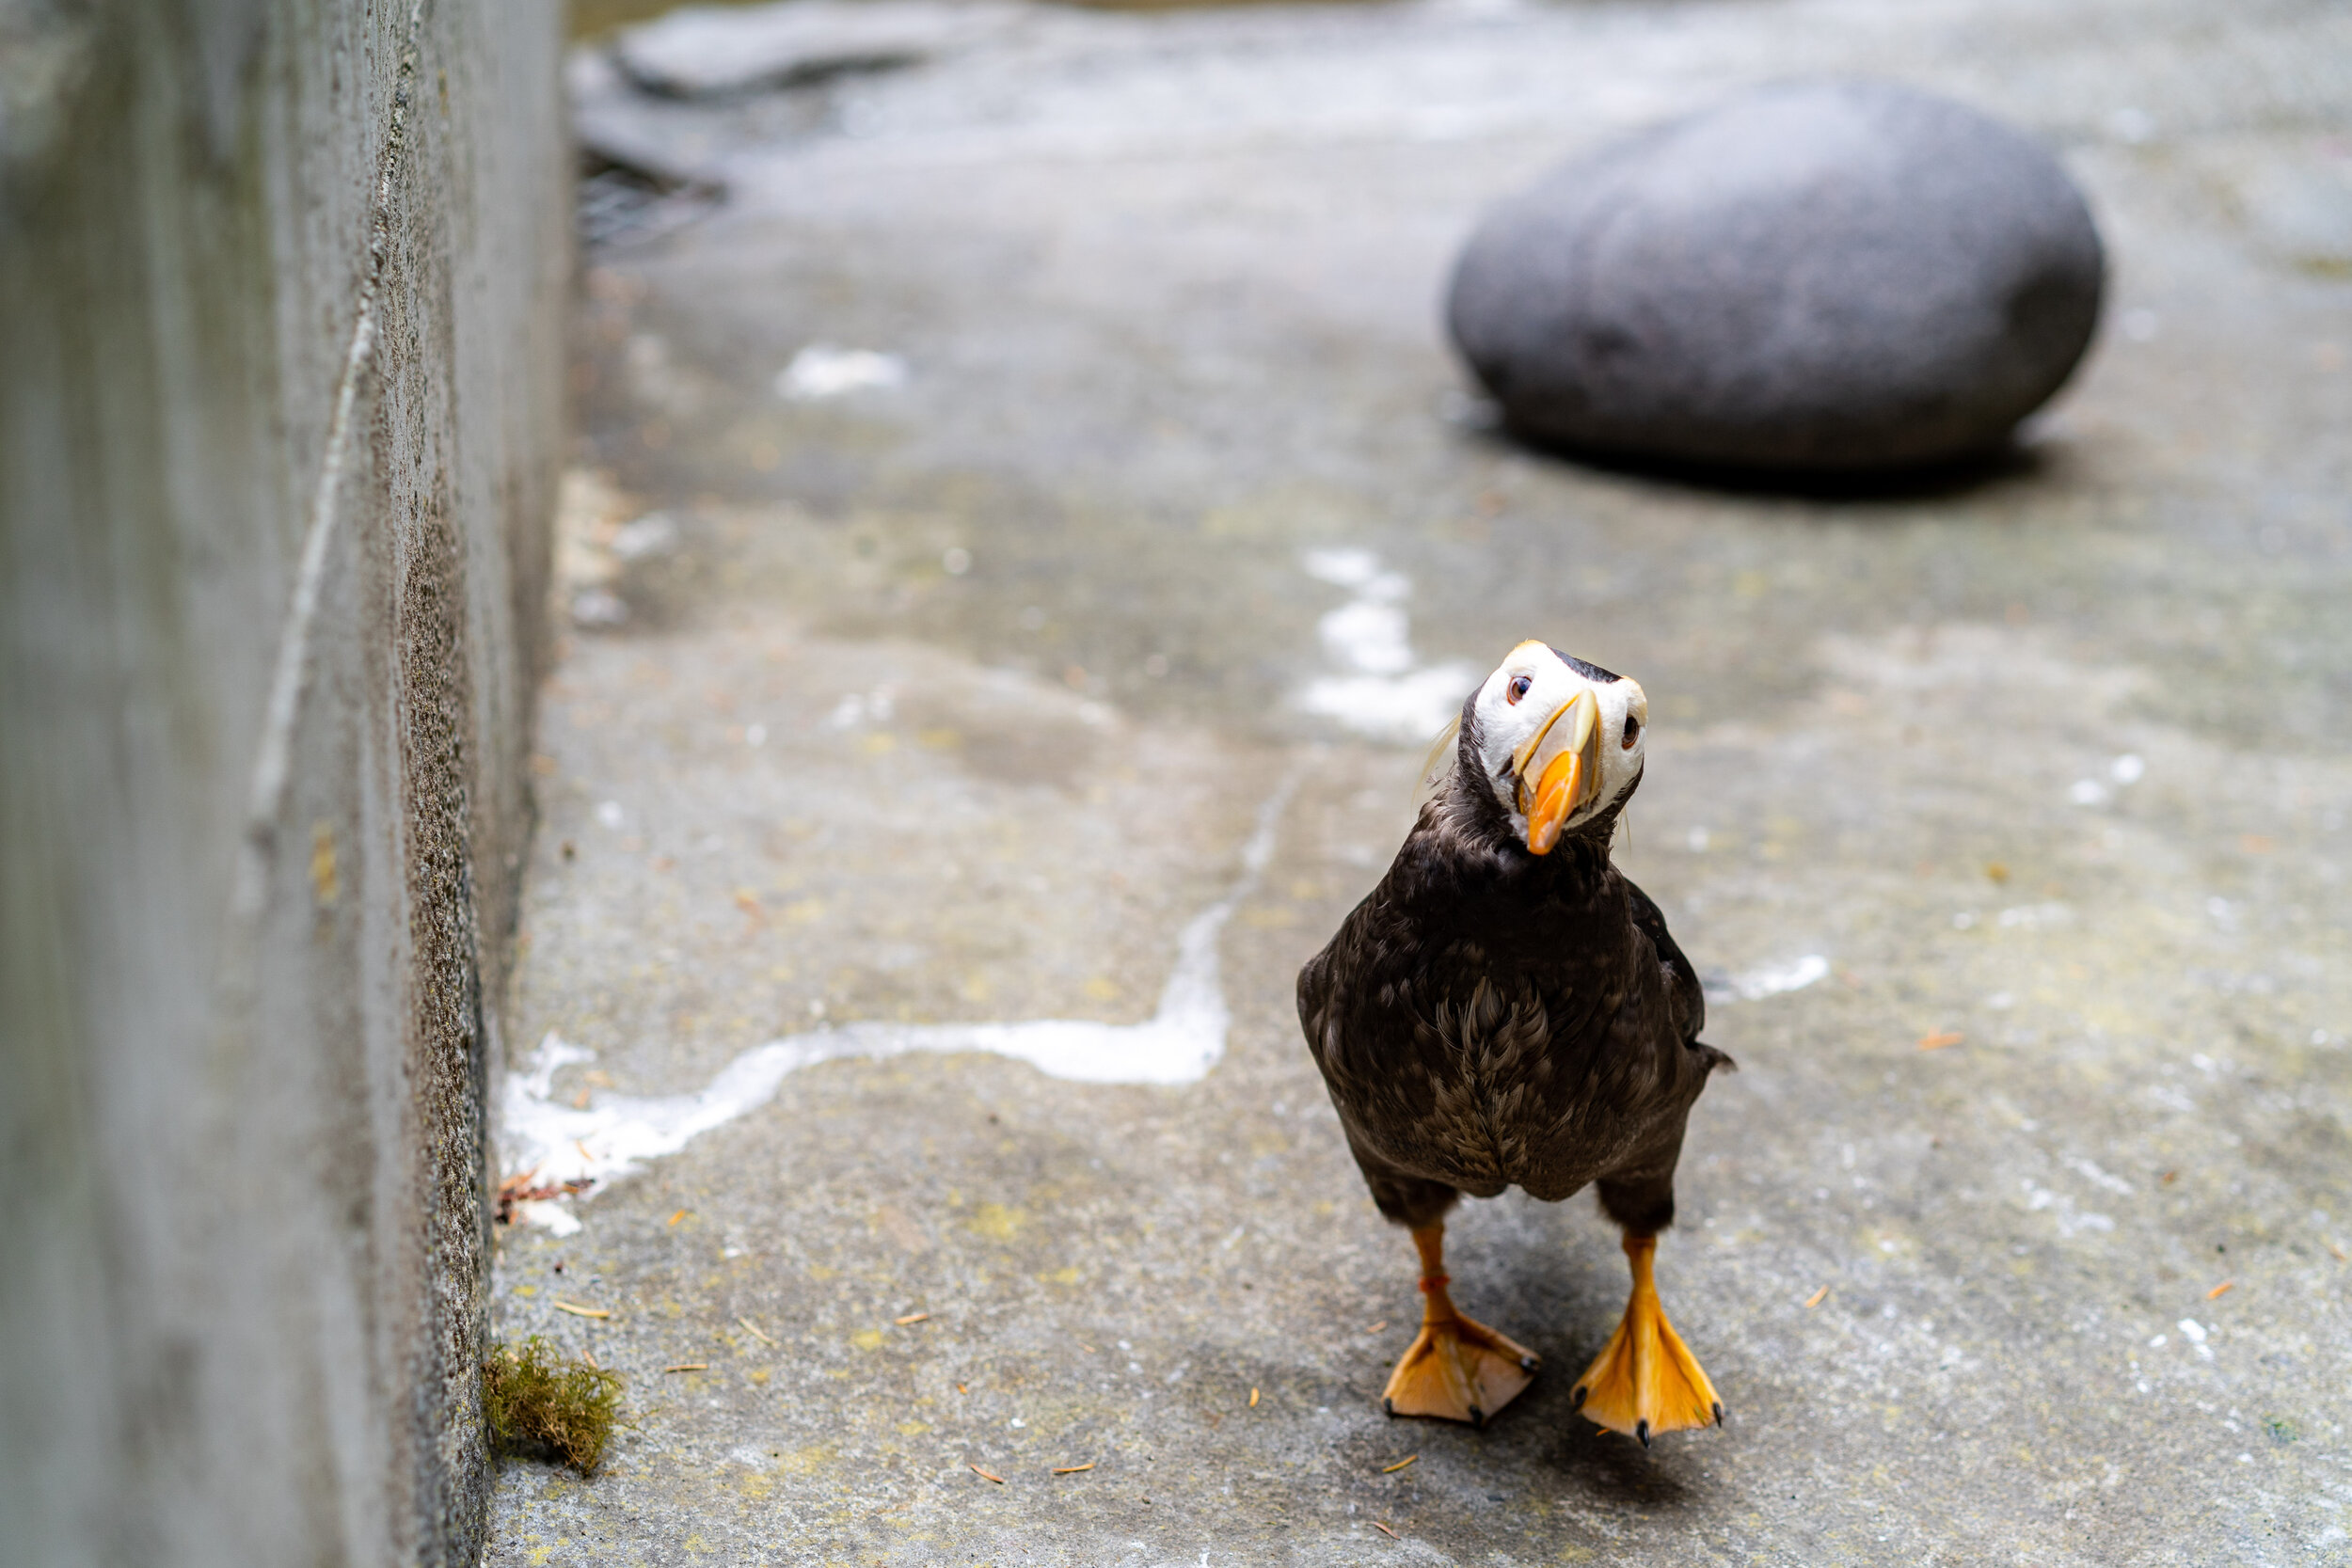 puffin at point defiance zoo 3.jpg